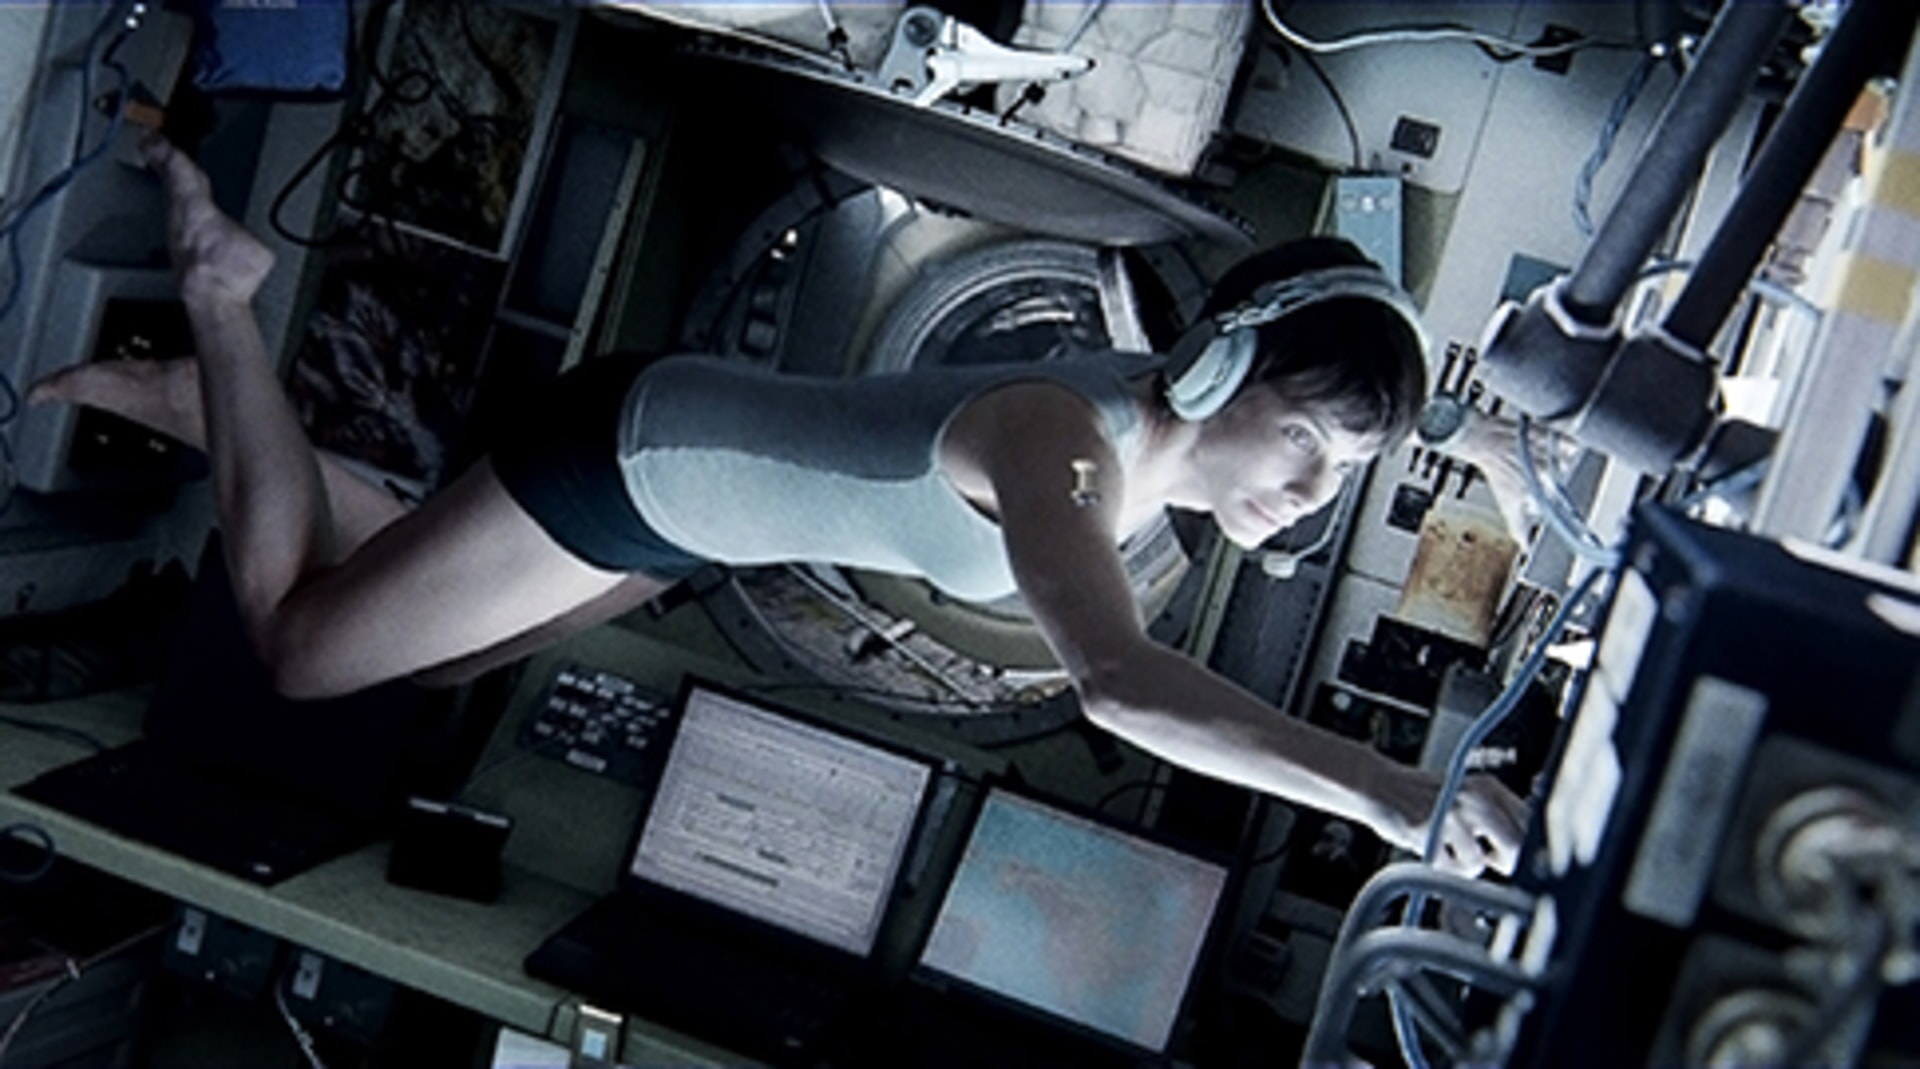 WarnerBros com | Gravity | Movies